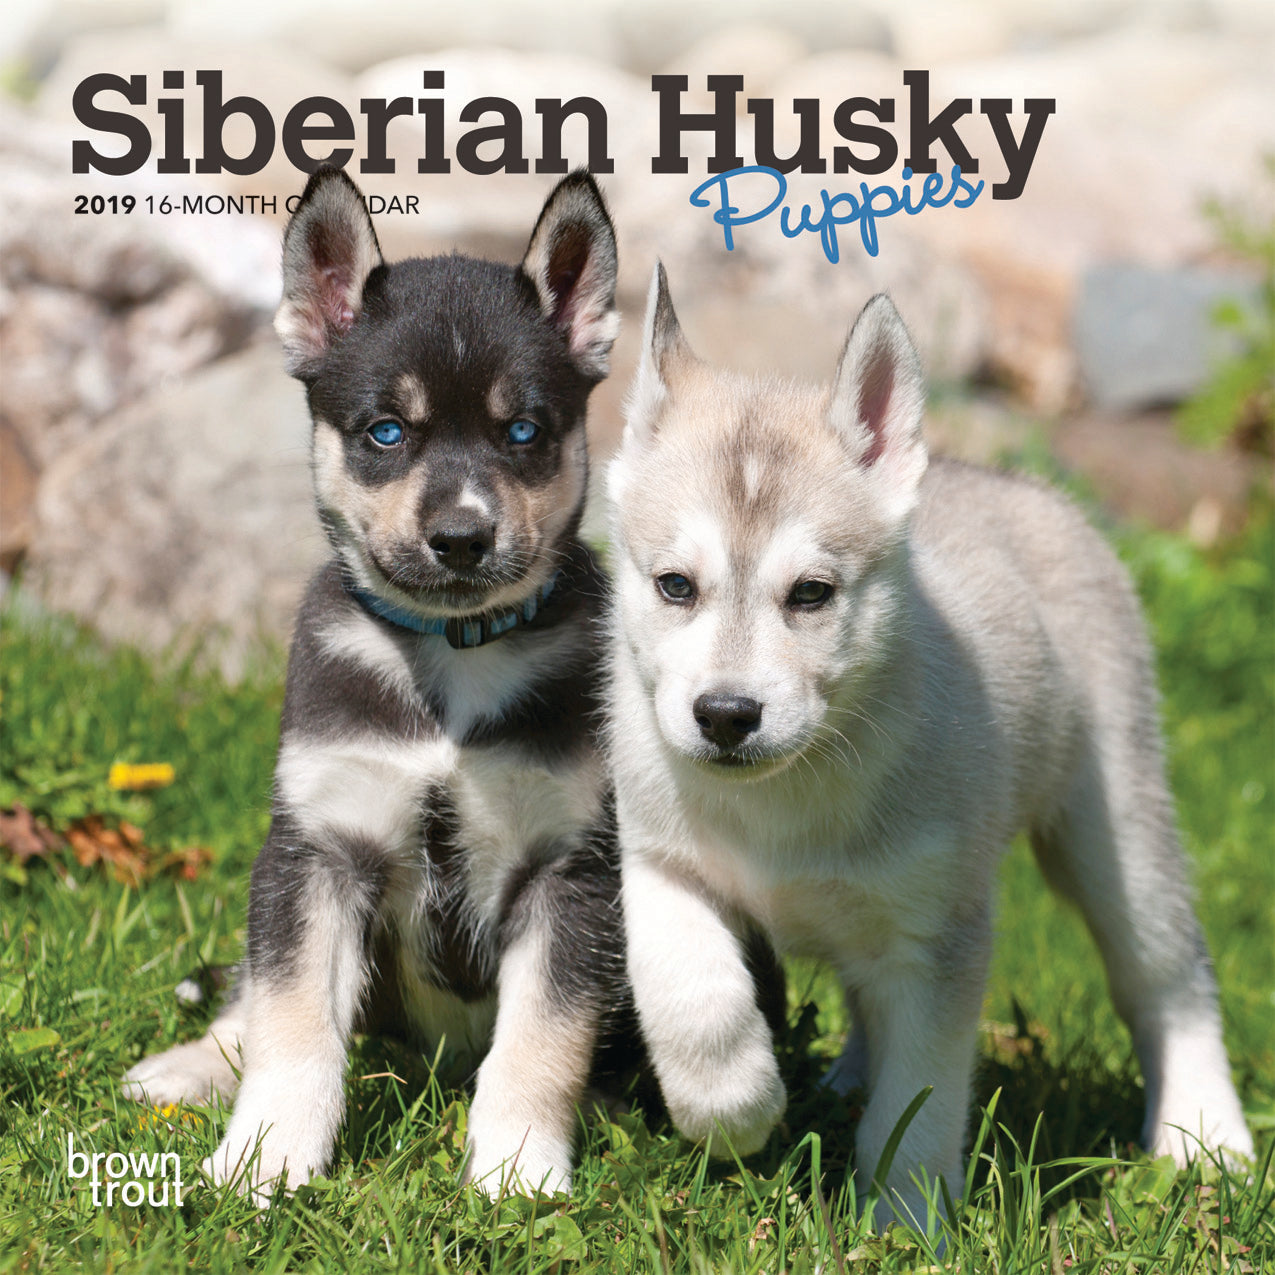 Siberian Husky Puppies 2019 Mini Wall Calendar